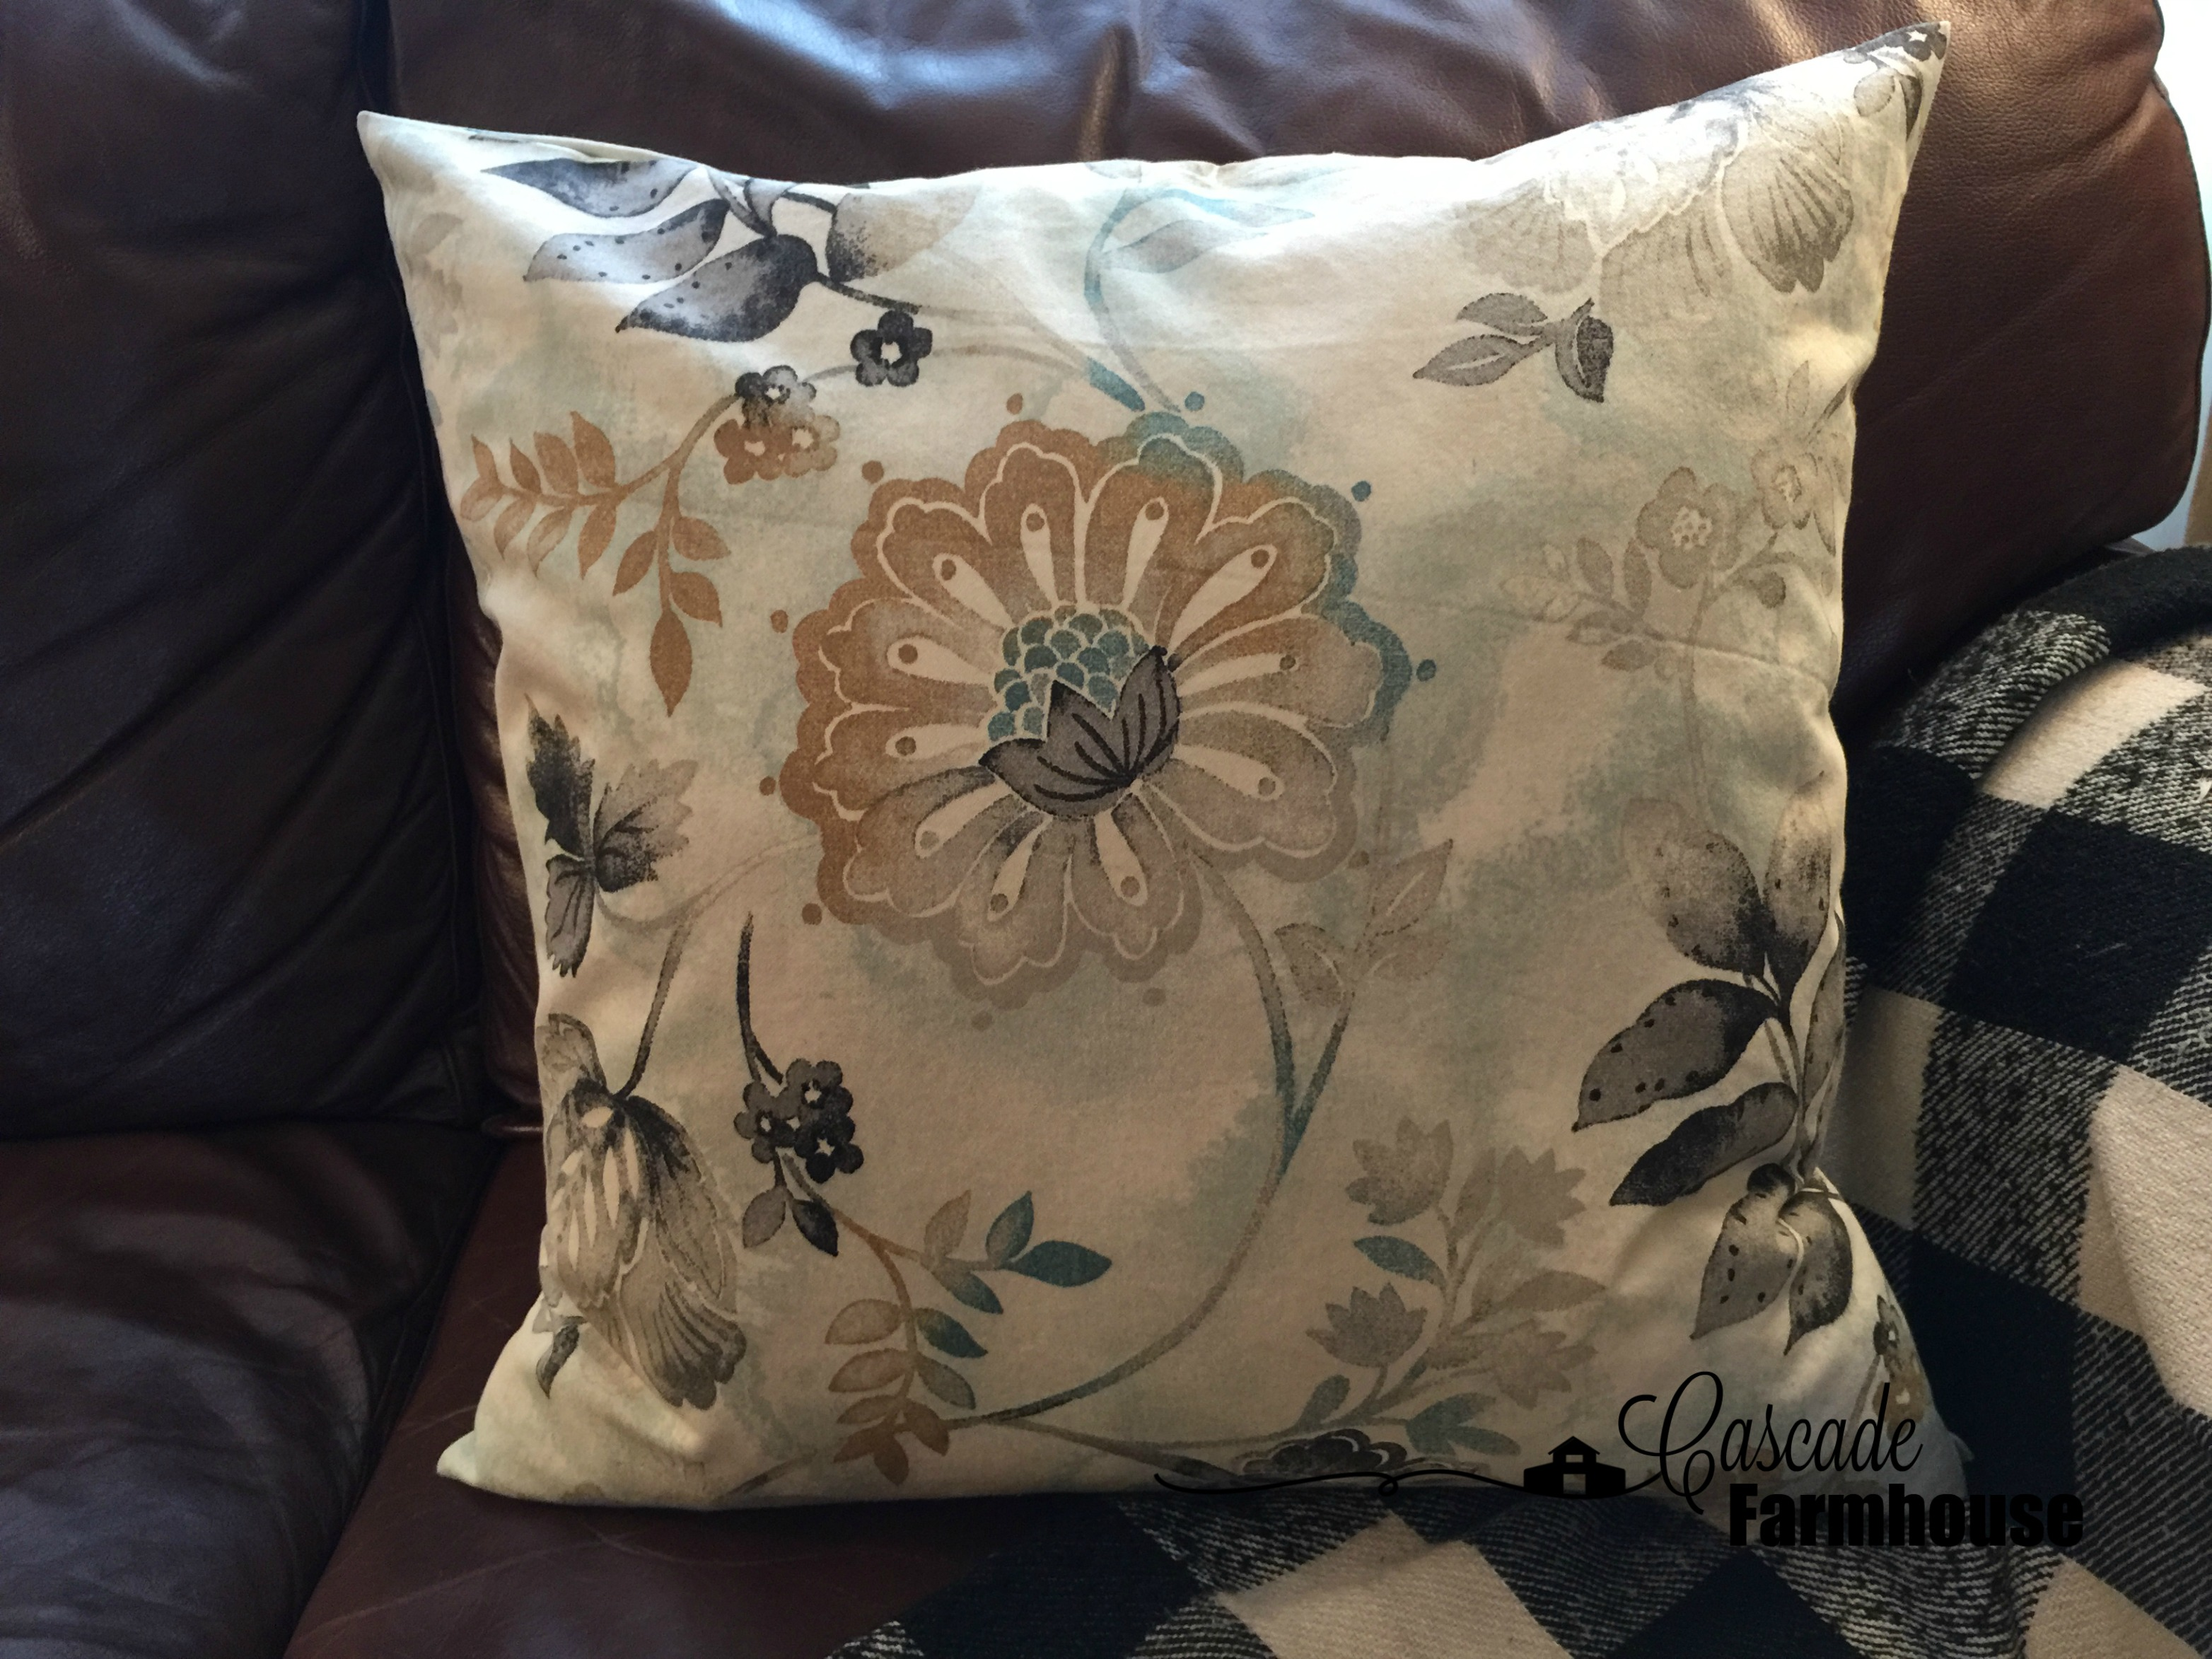 Throw Pillows For Couch Pinterest : Throw Pillows-Pillow on Couch